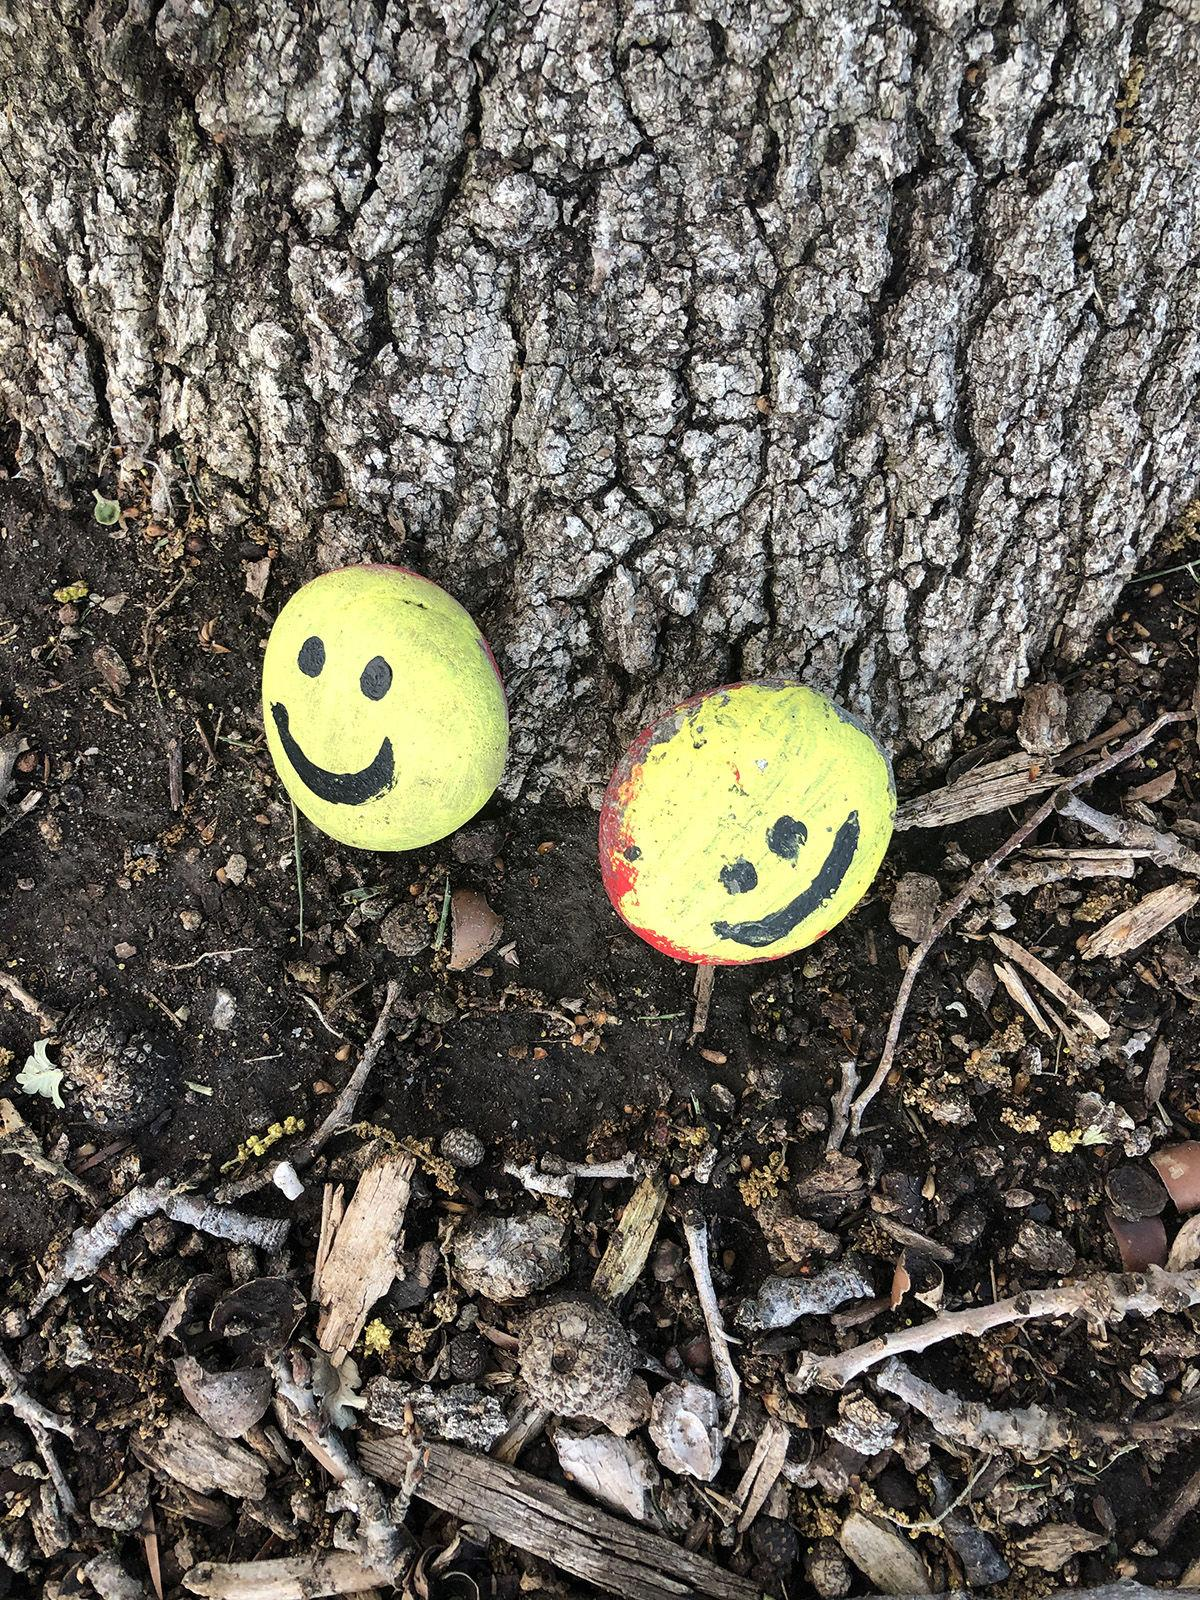 Smiley faces and words of hope One California neighborhood finds community can be a rock